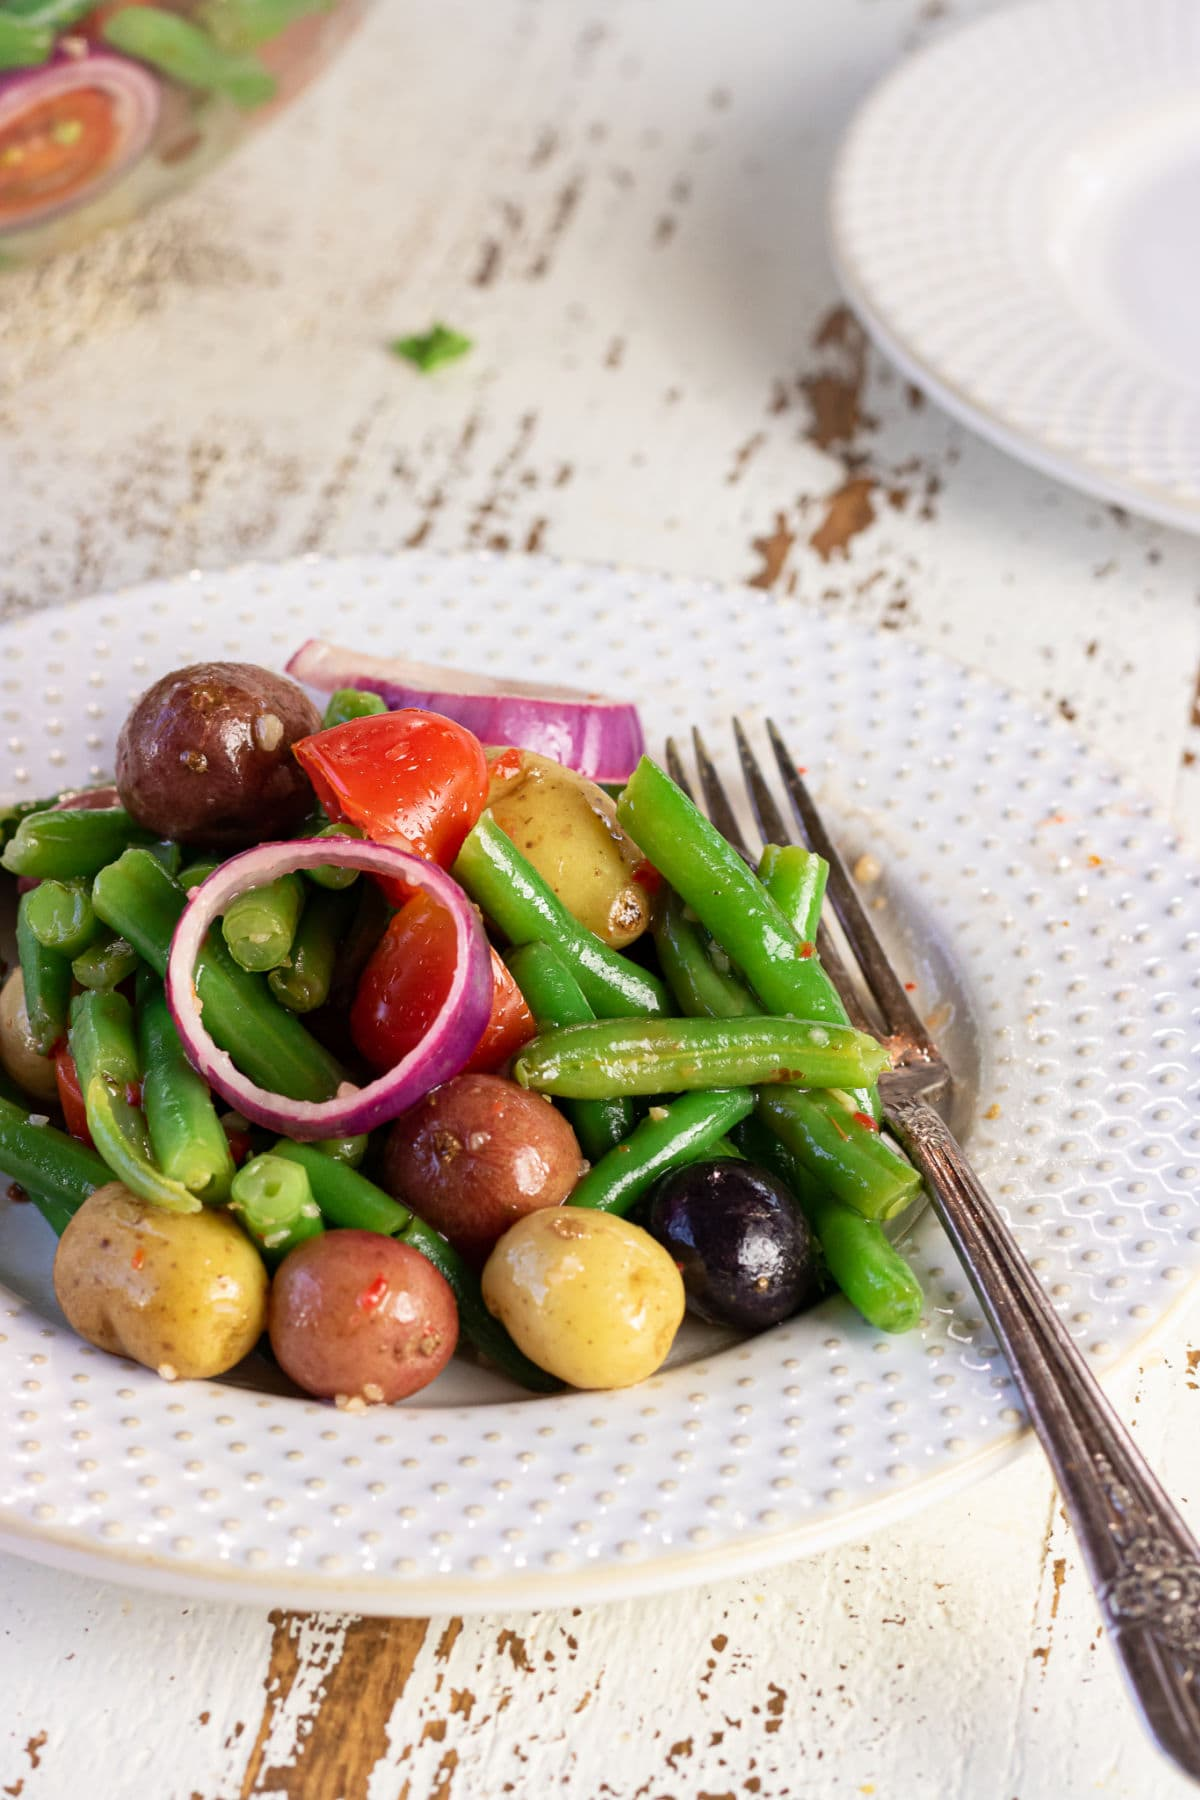 Decorative image. Close up of a plate of the salad with a fork in it.